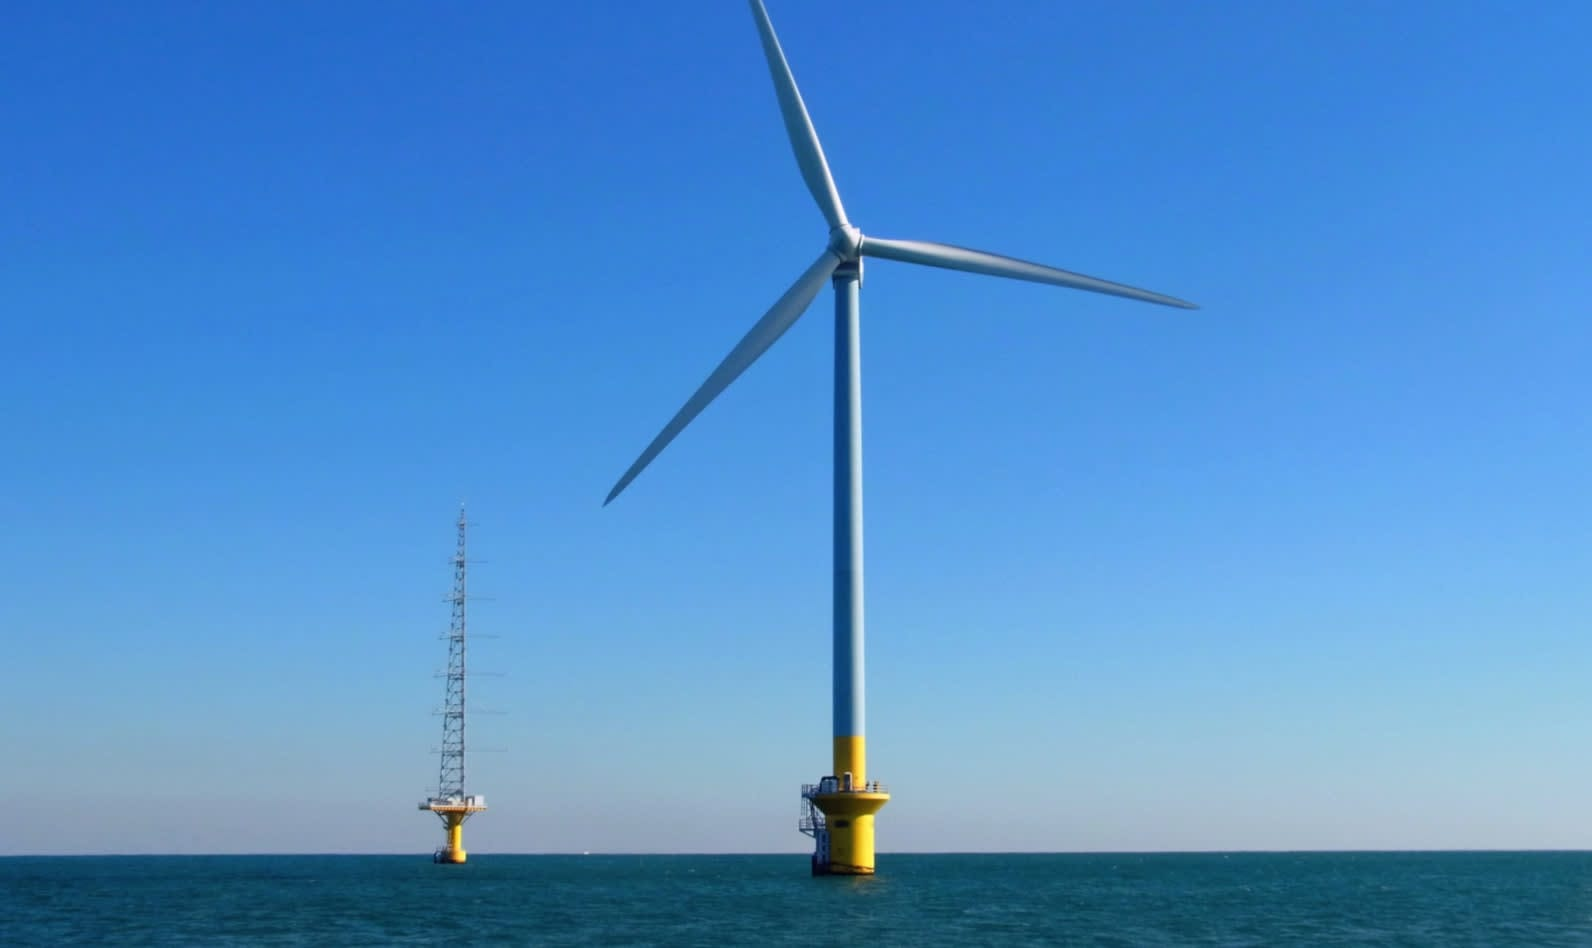 Japan has hardly any offshore wind farms in commercial operation